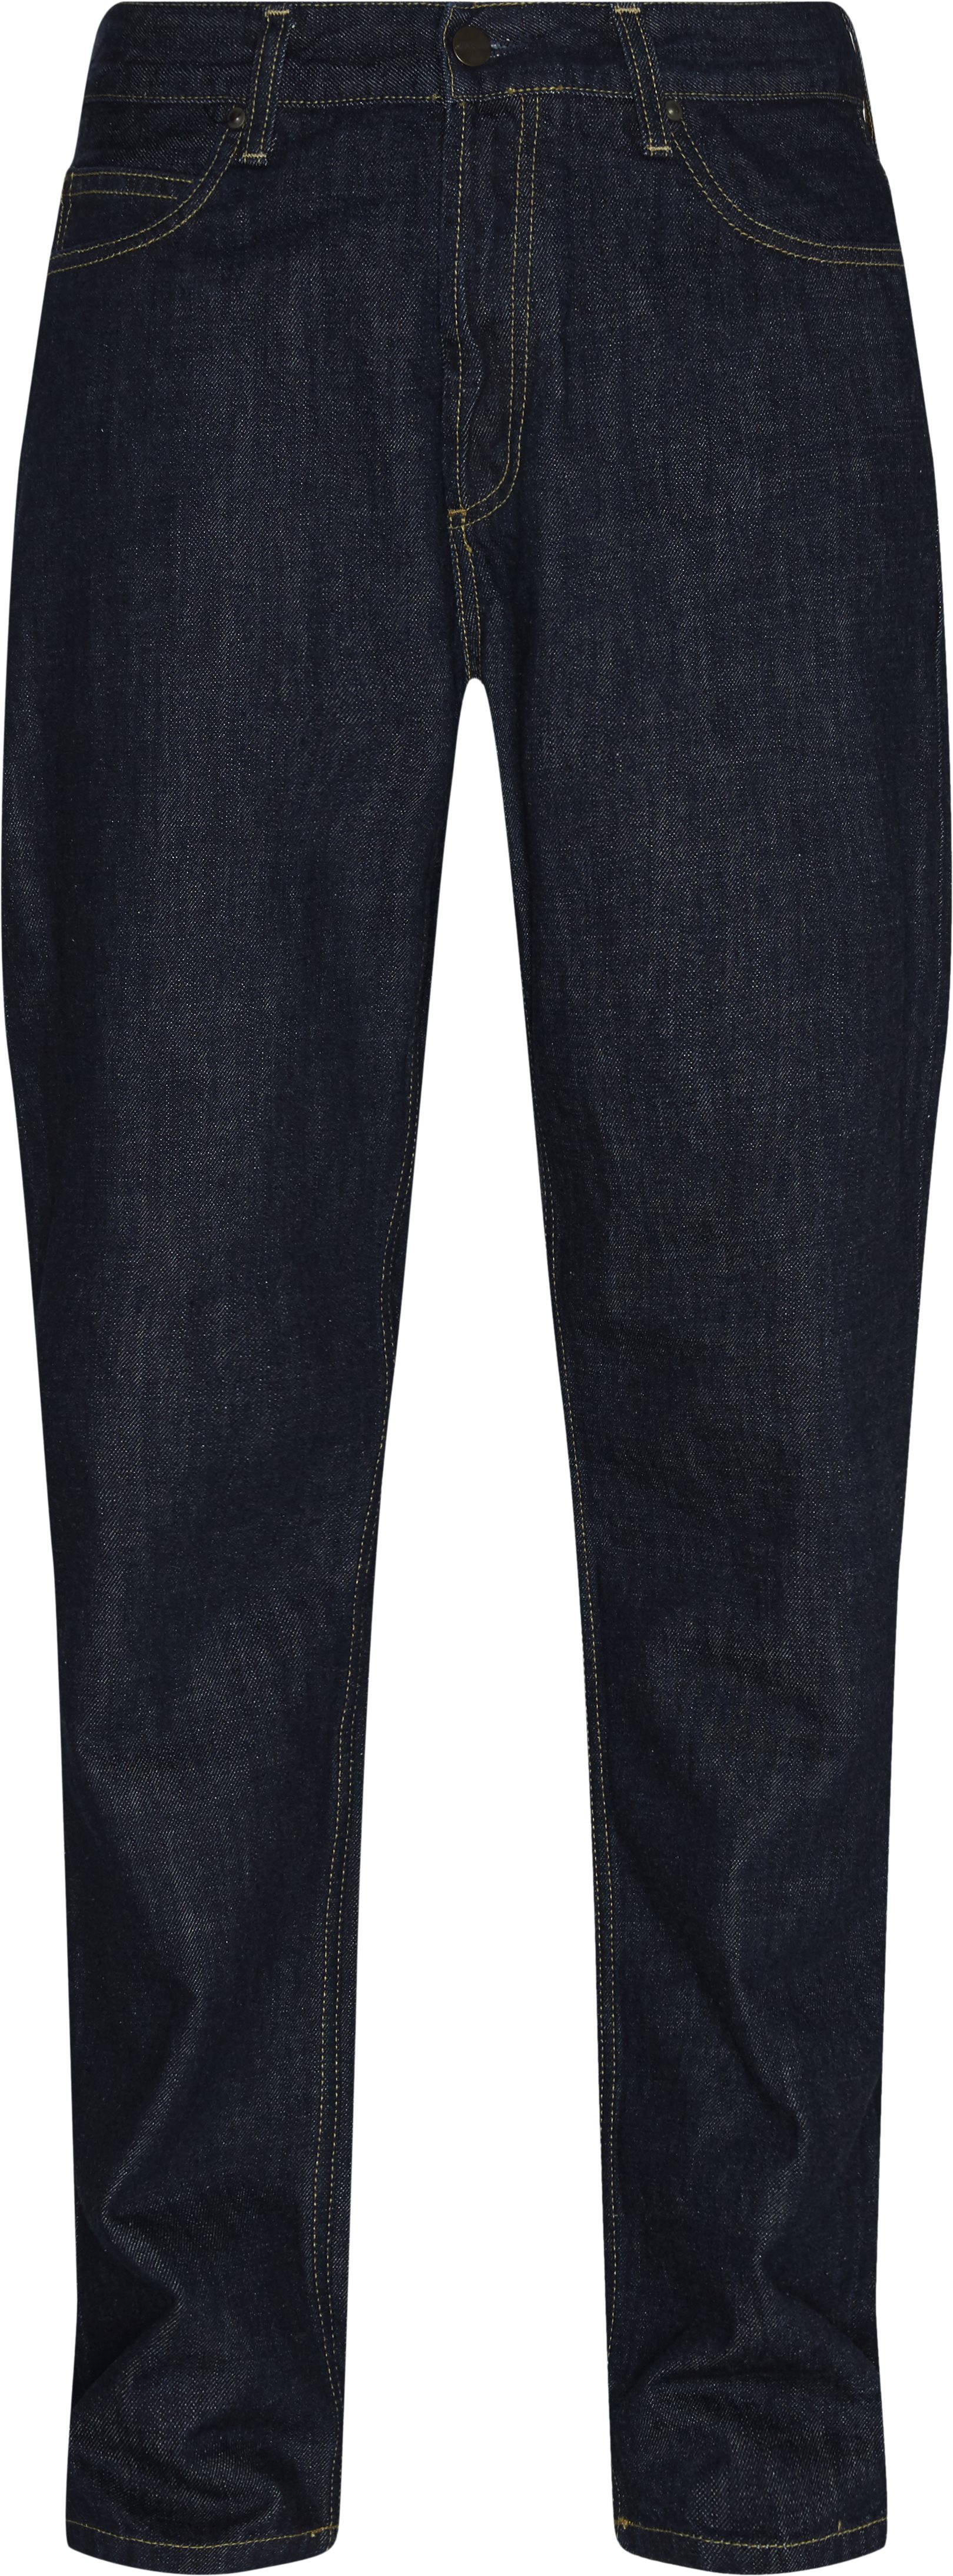 Marlow Pant - Jeans - Relaxed fit - Blå